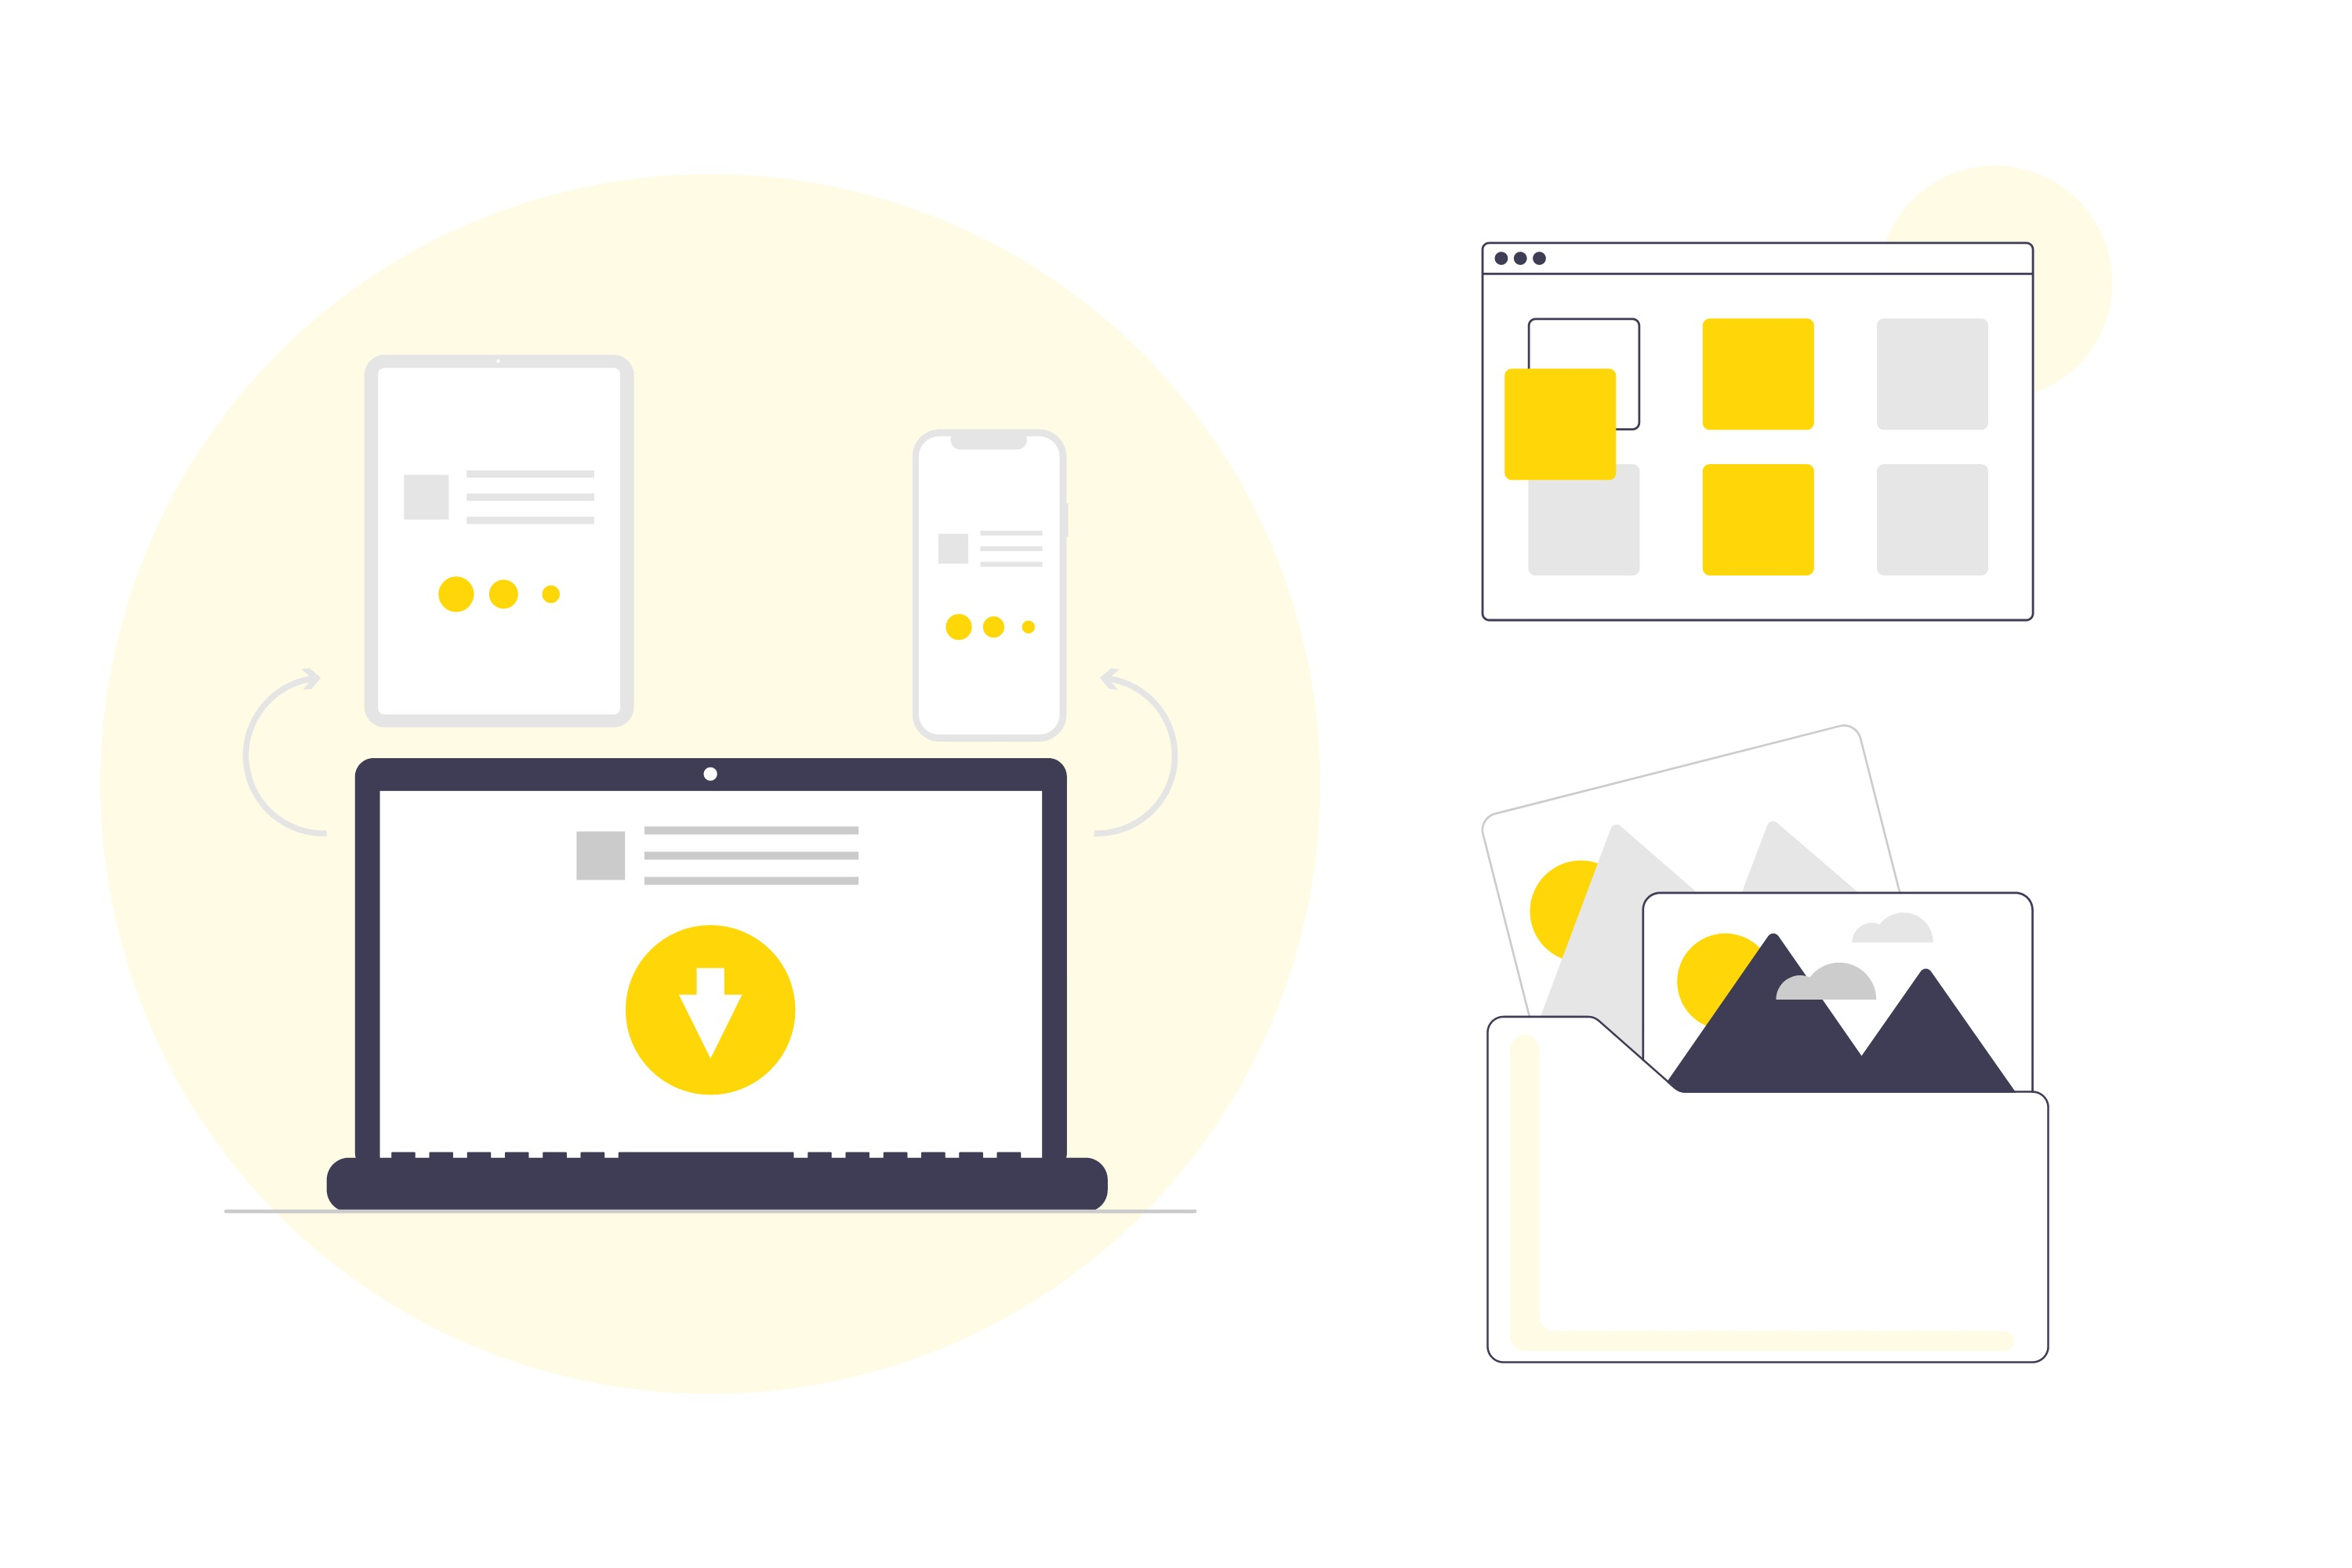 Automating Screenshots for UX & Design Auditing